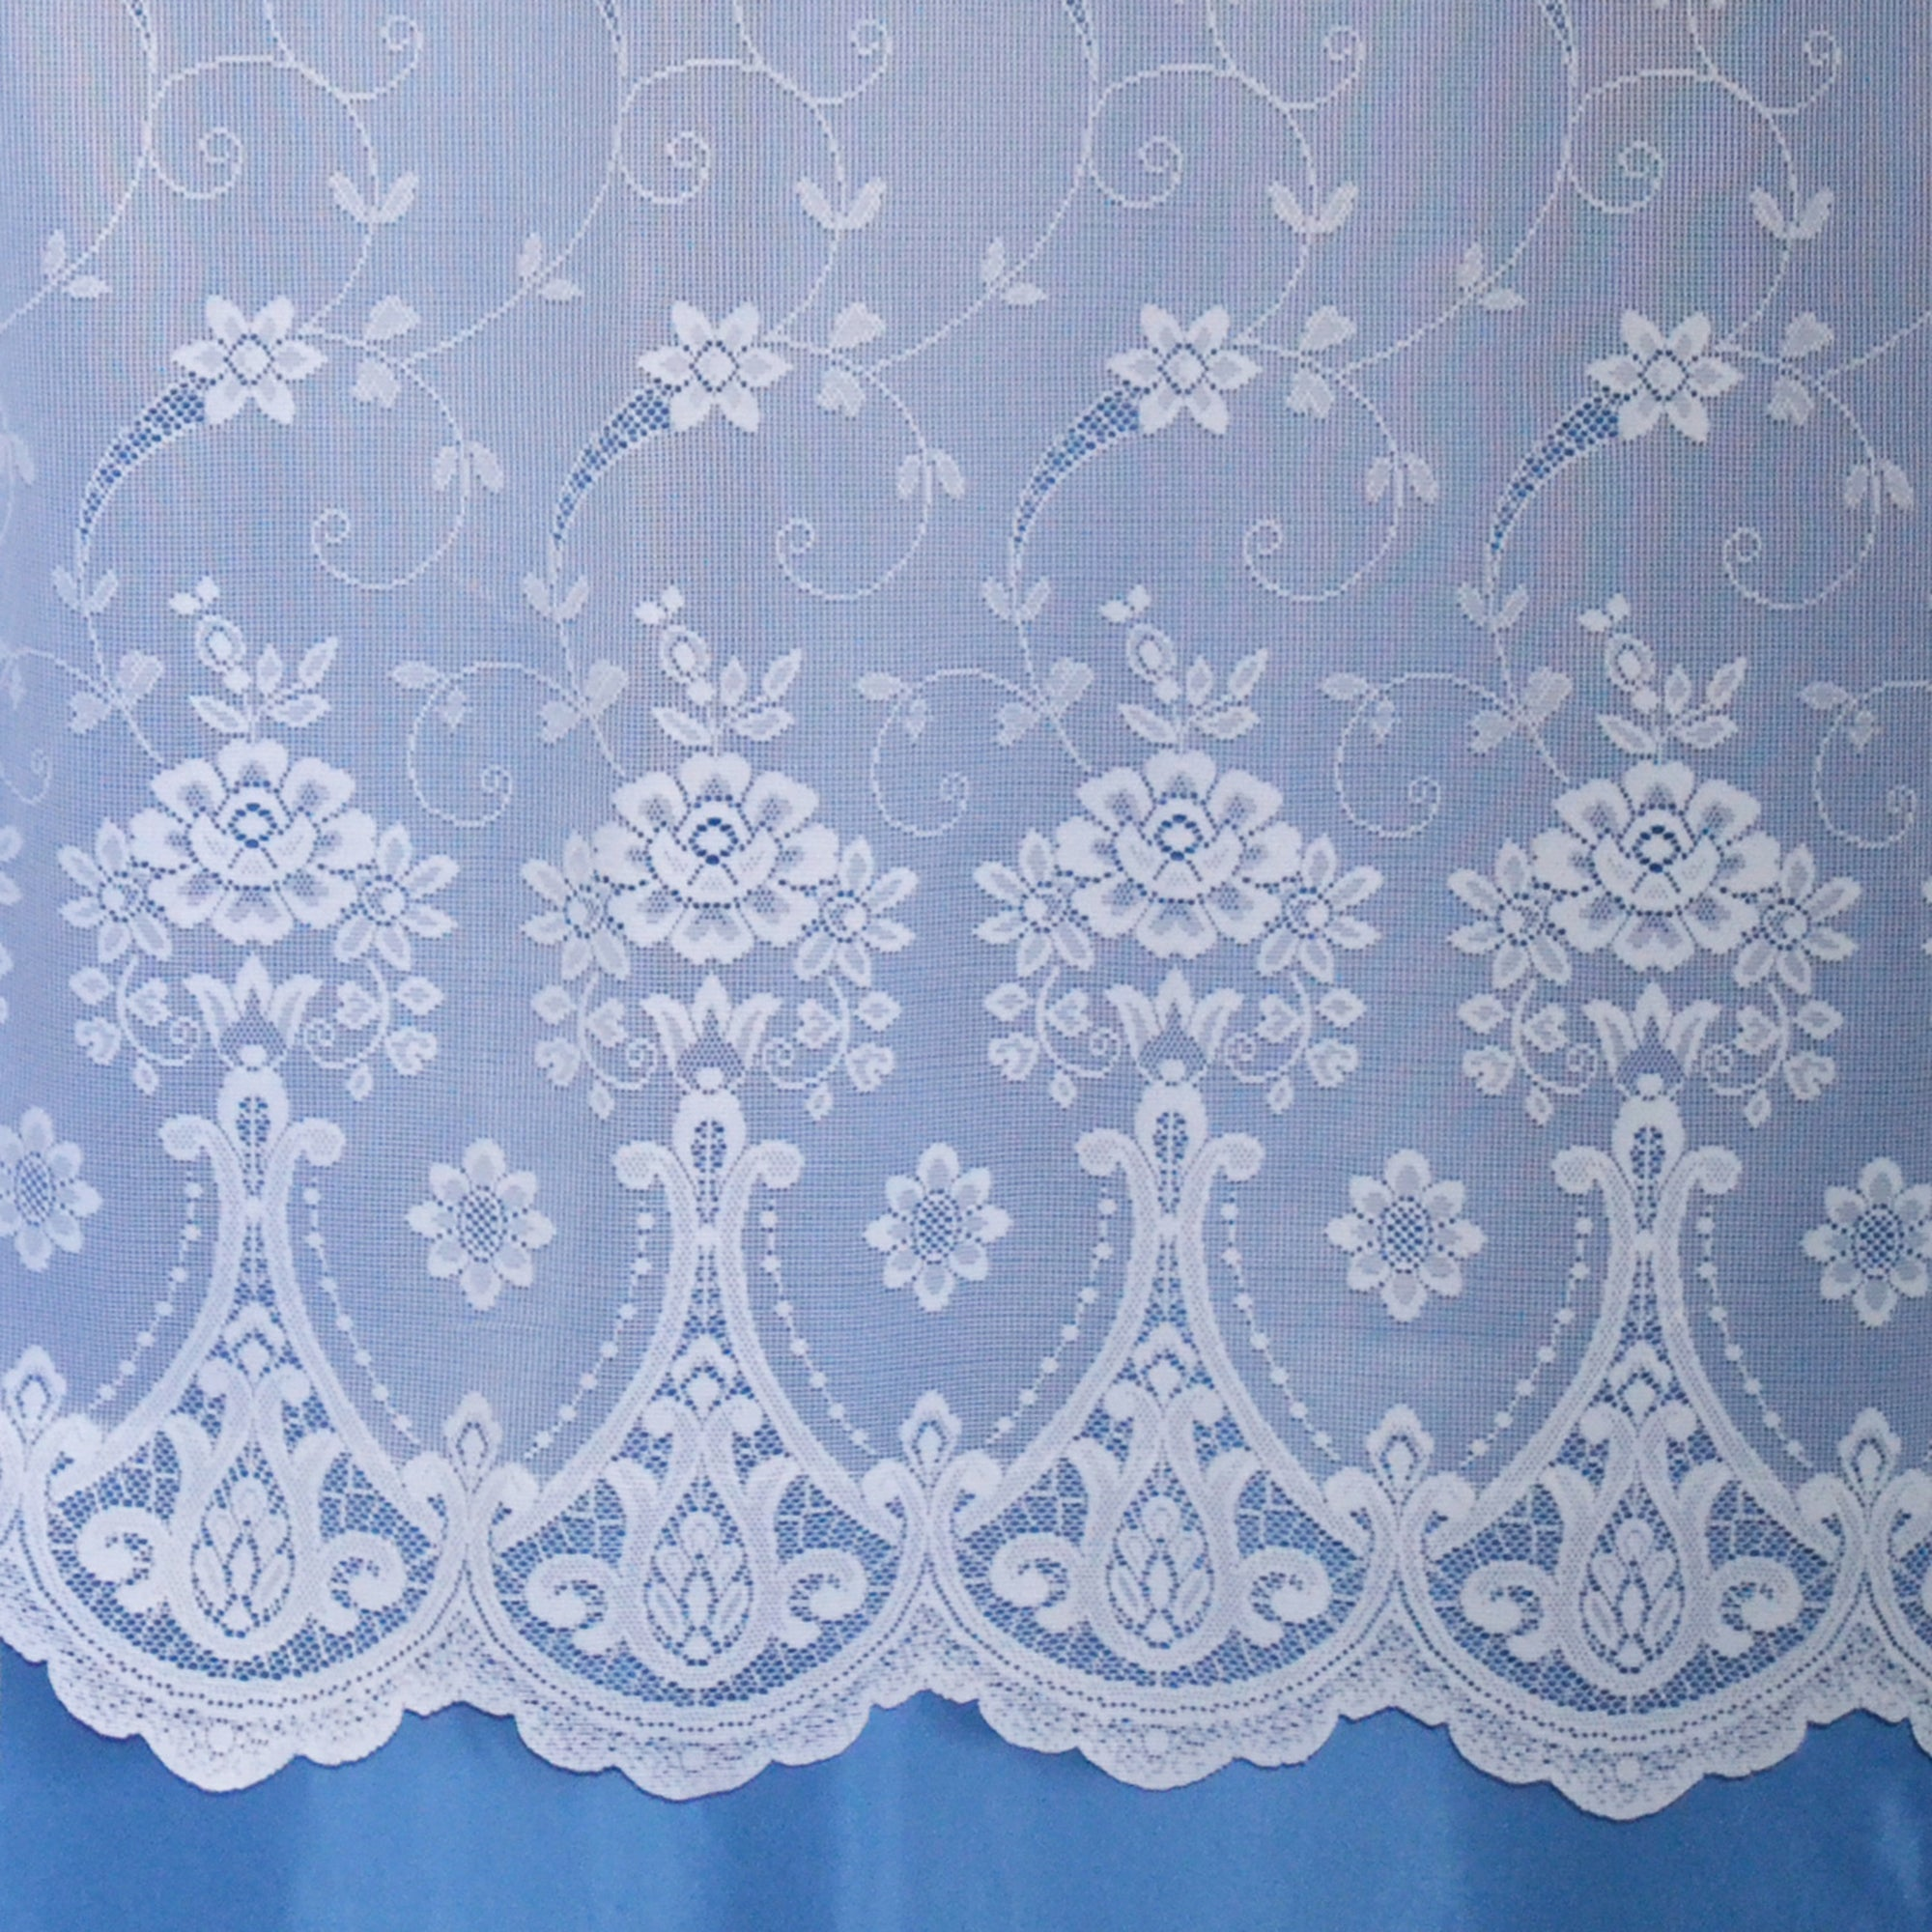 Pembury White Lace Net Fabric